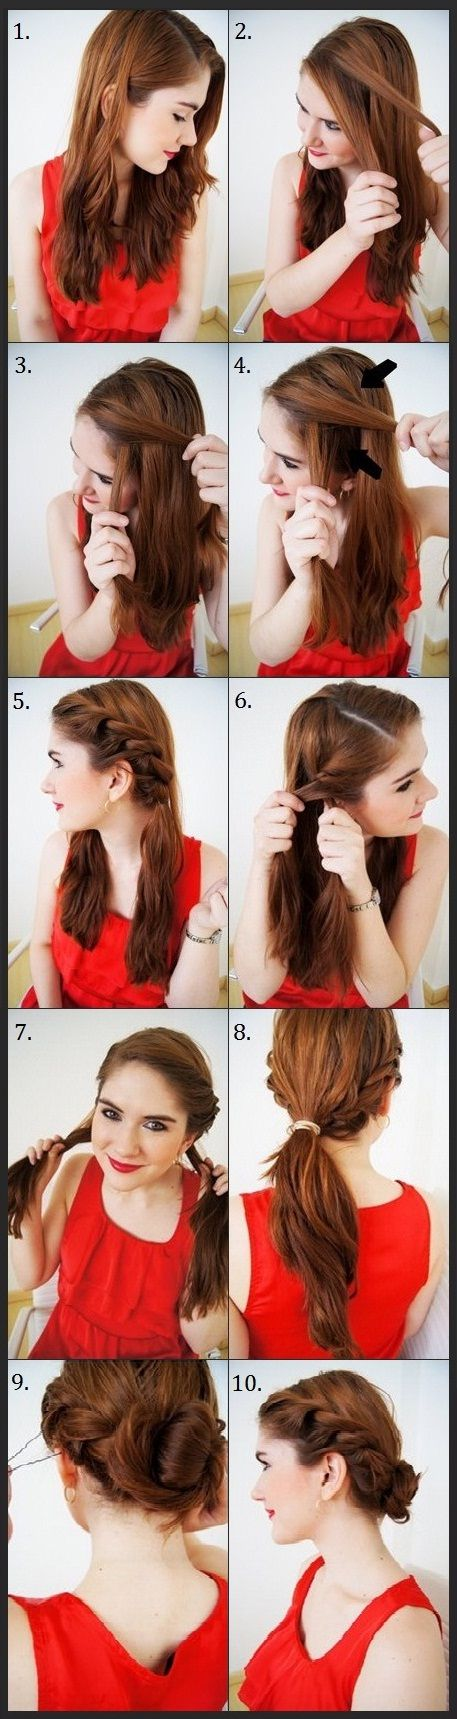 The Twisty Updo hair tutorial @Michelle Flynn Flynn Simard... if your hair is still long, you could totally do this one!